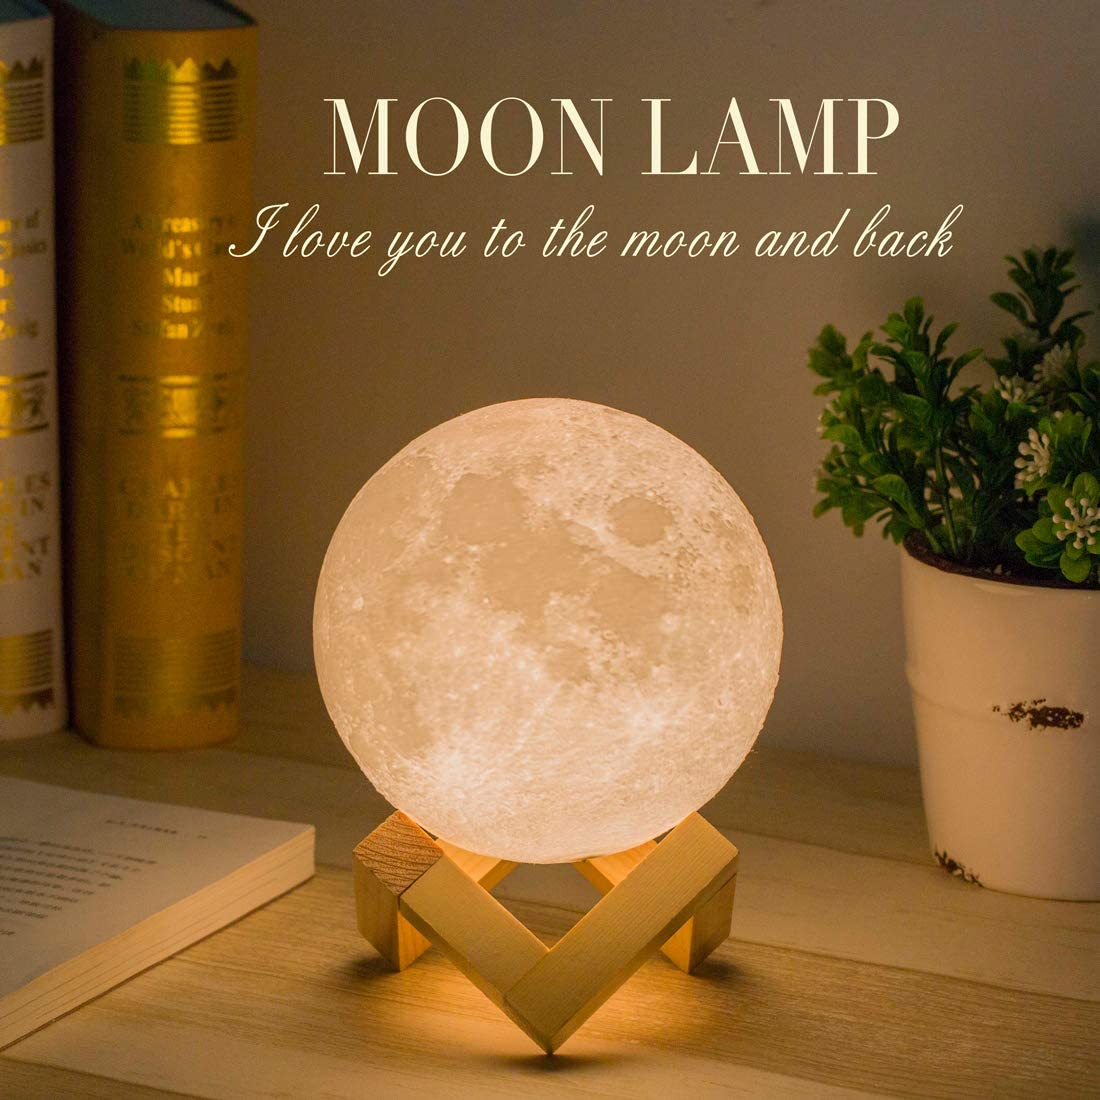 Moon Lamp, Balkwan 4.7 inches 3D Printing Moon Light uses Dimmable and Touch Control Design,Romantic Funny Birthday Gifts for Women,Men,Kids,Child and Baby. Rustic Home Decor Rechargeable Night Light